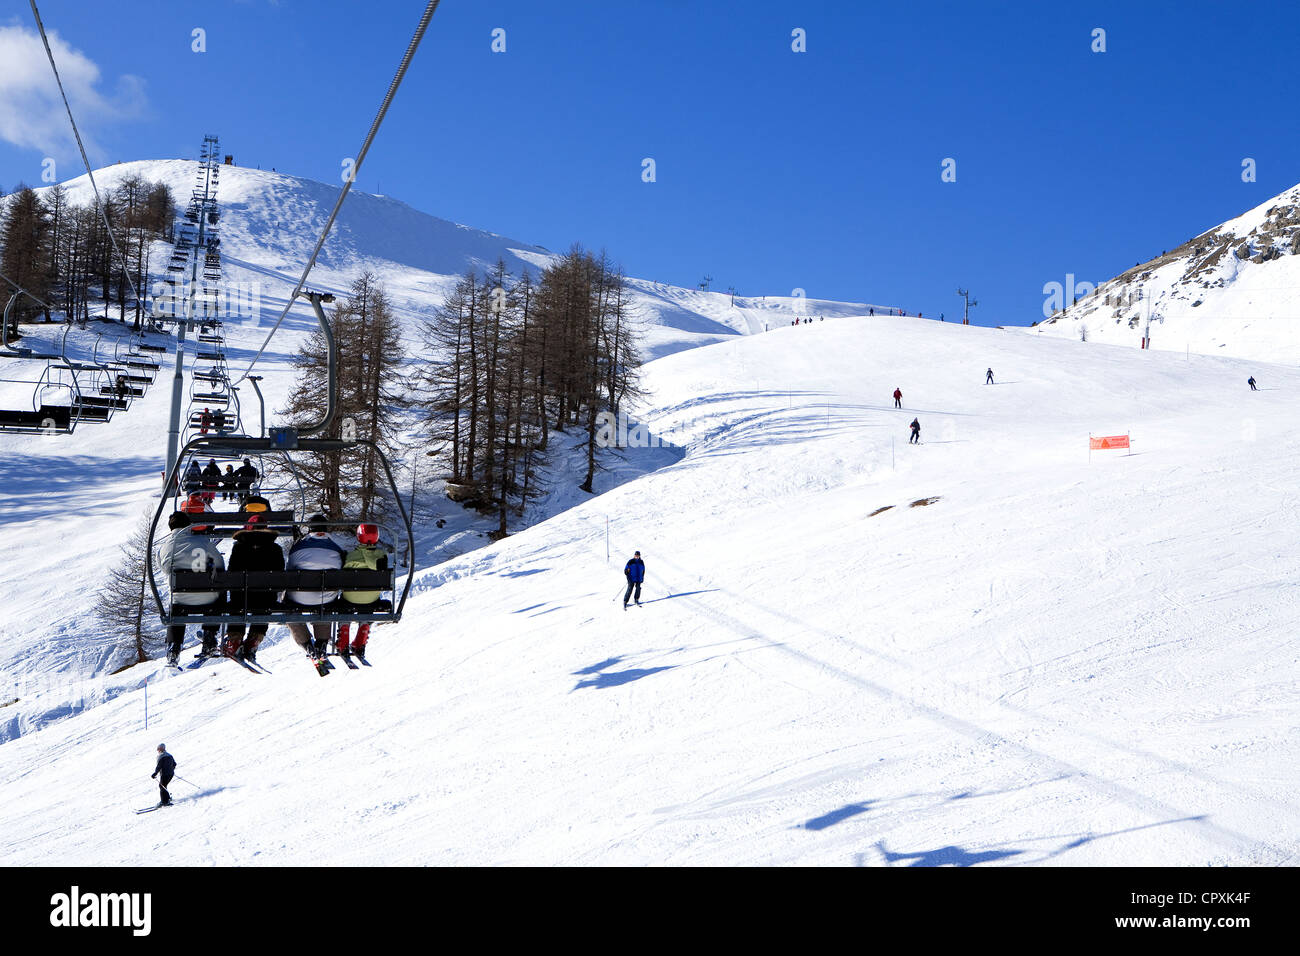 france, hautes alpes, ski resort of montgenevre stock photo